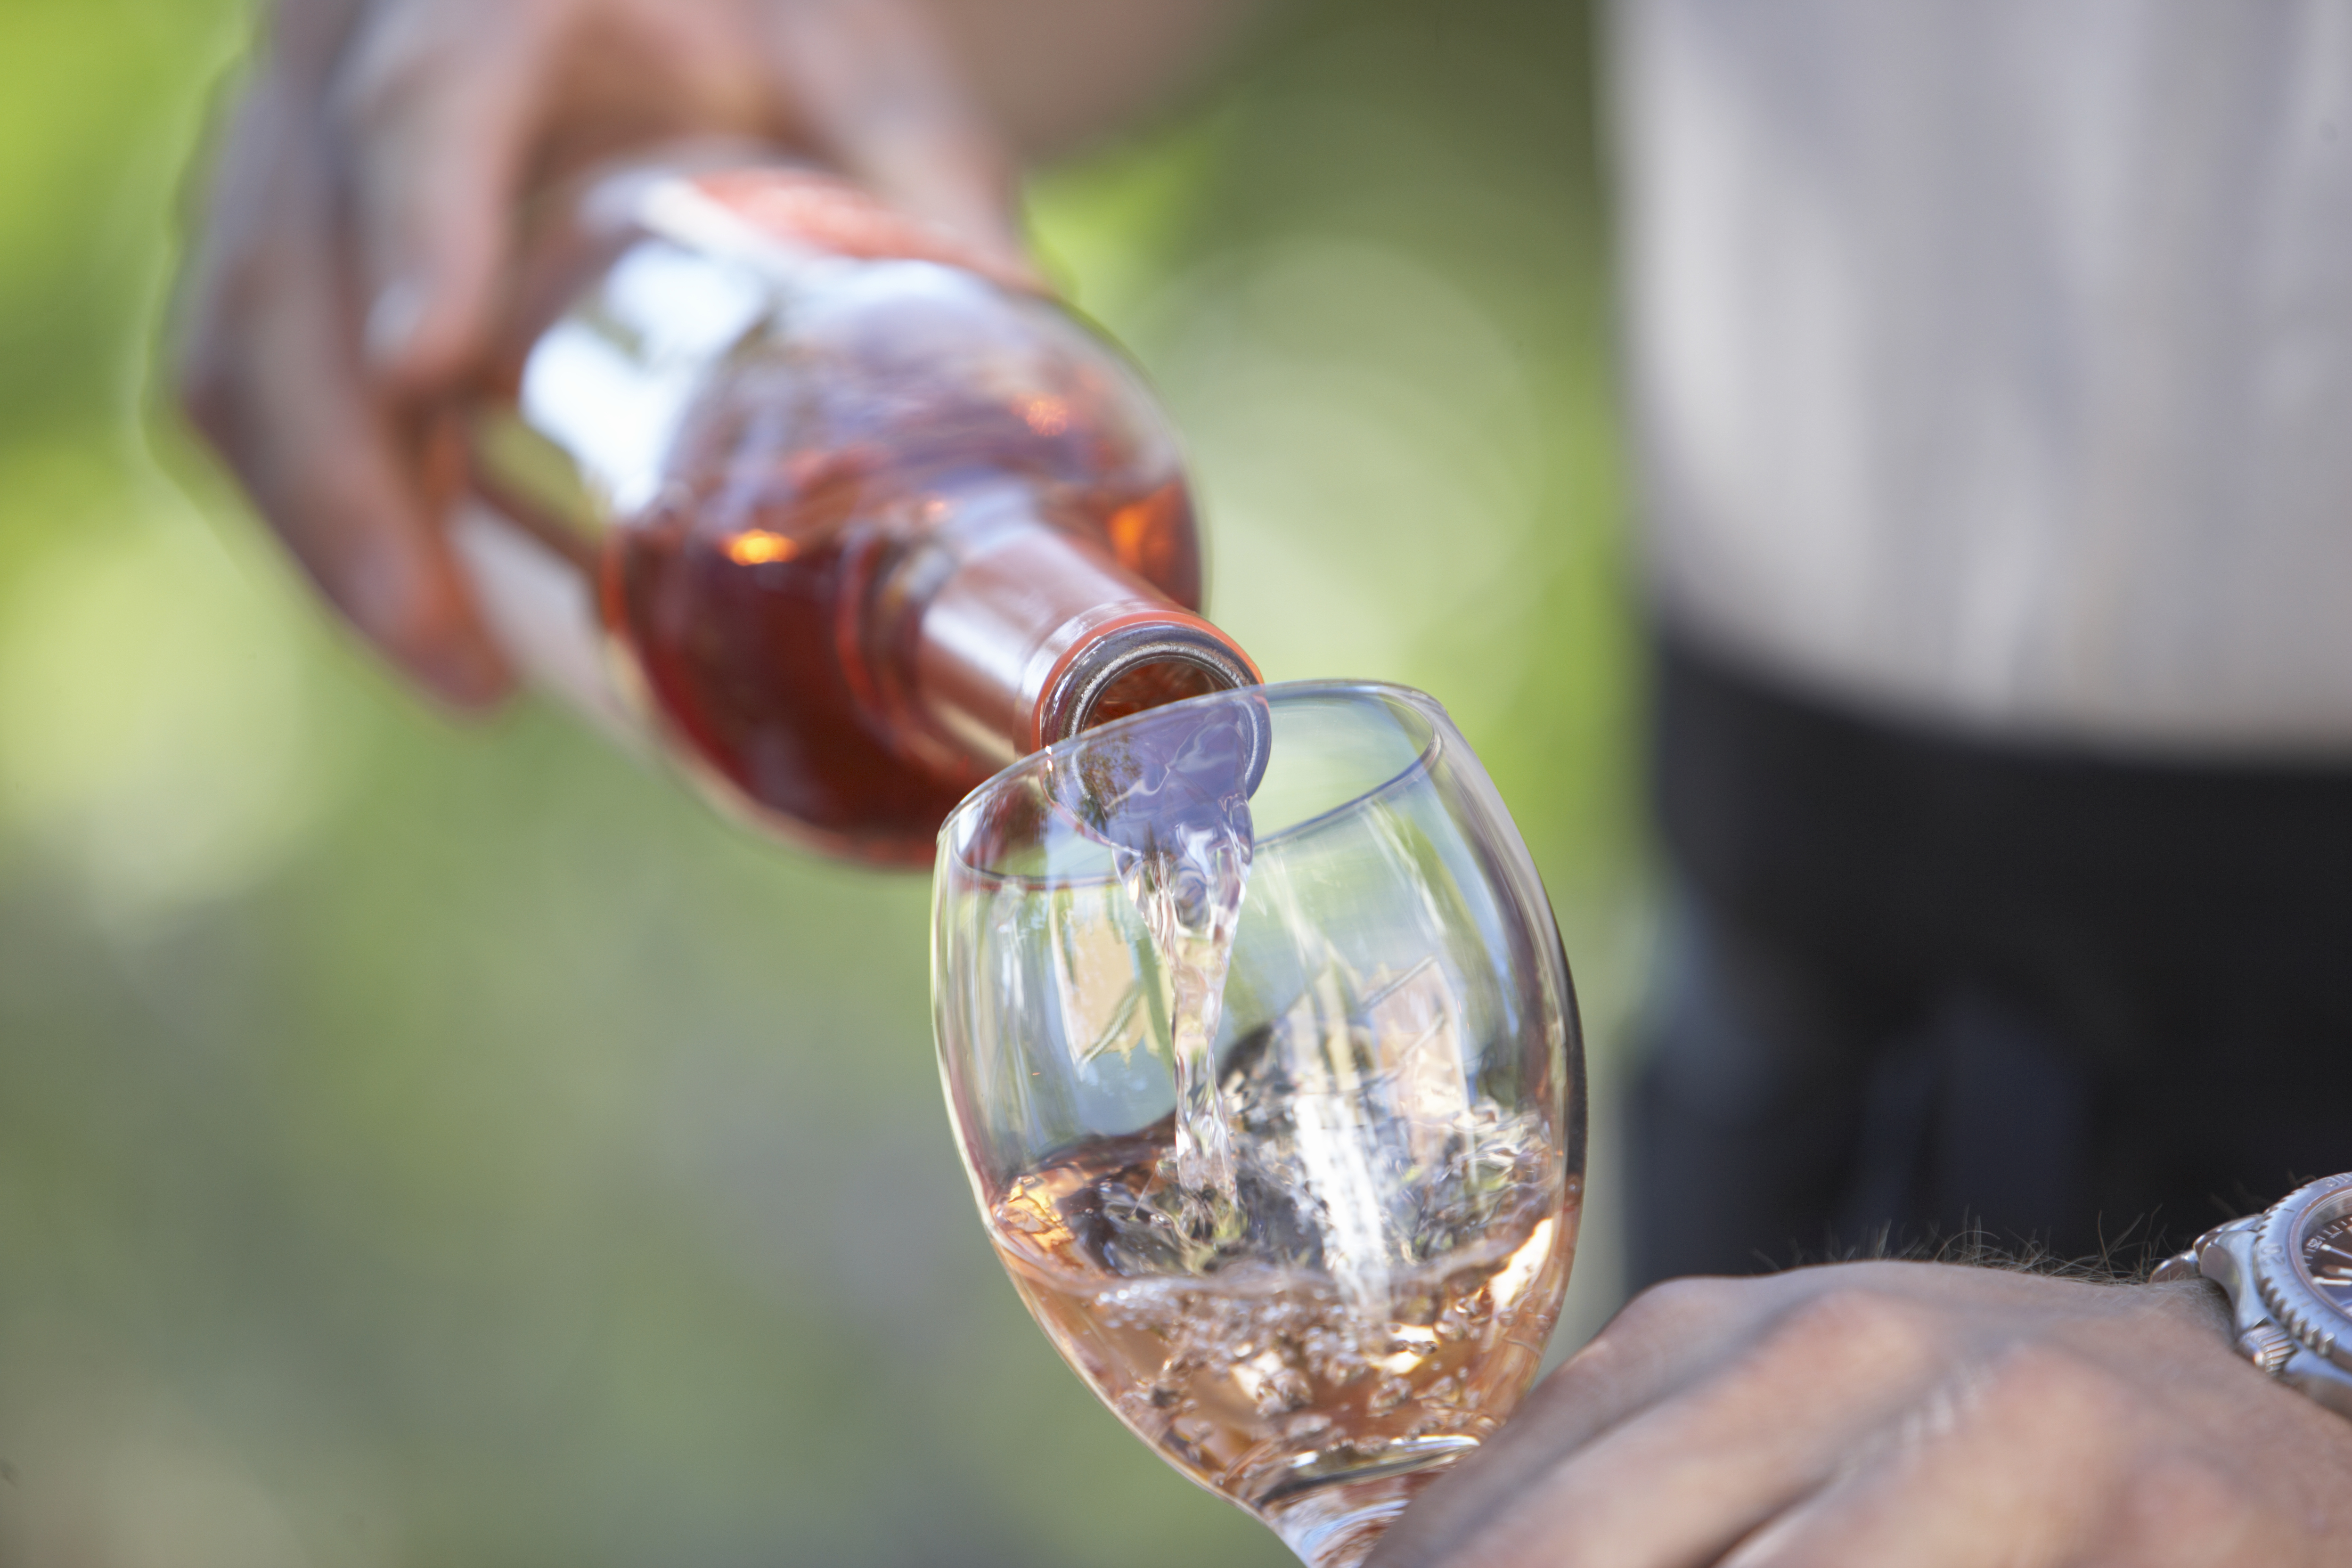 Celebrate the month of love with a glass of rosé wine!